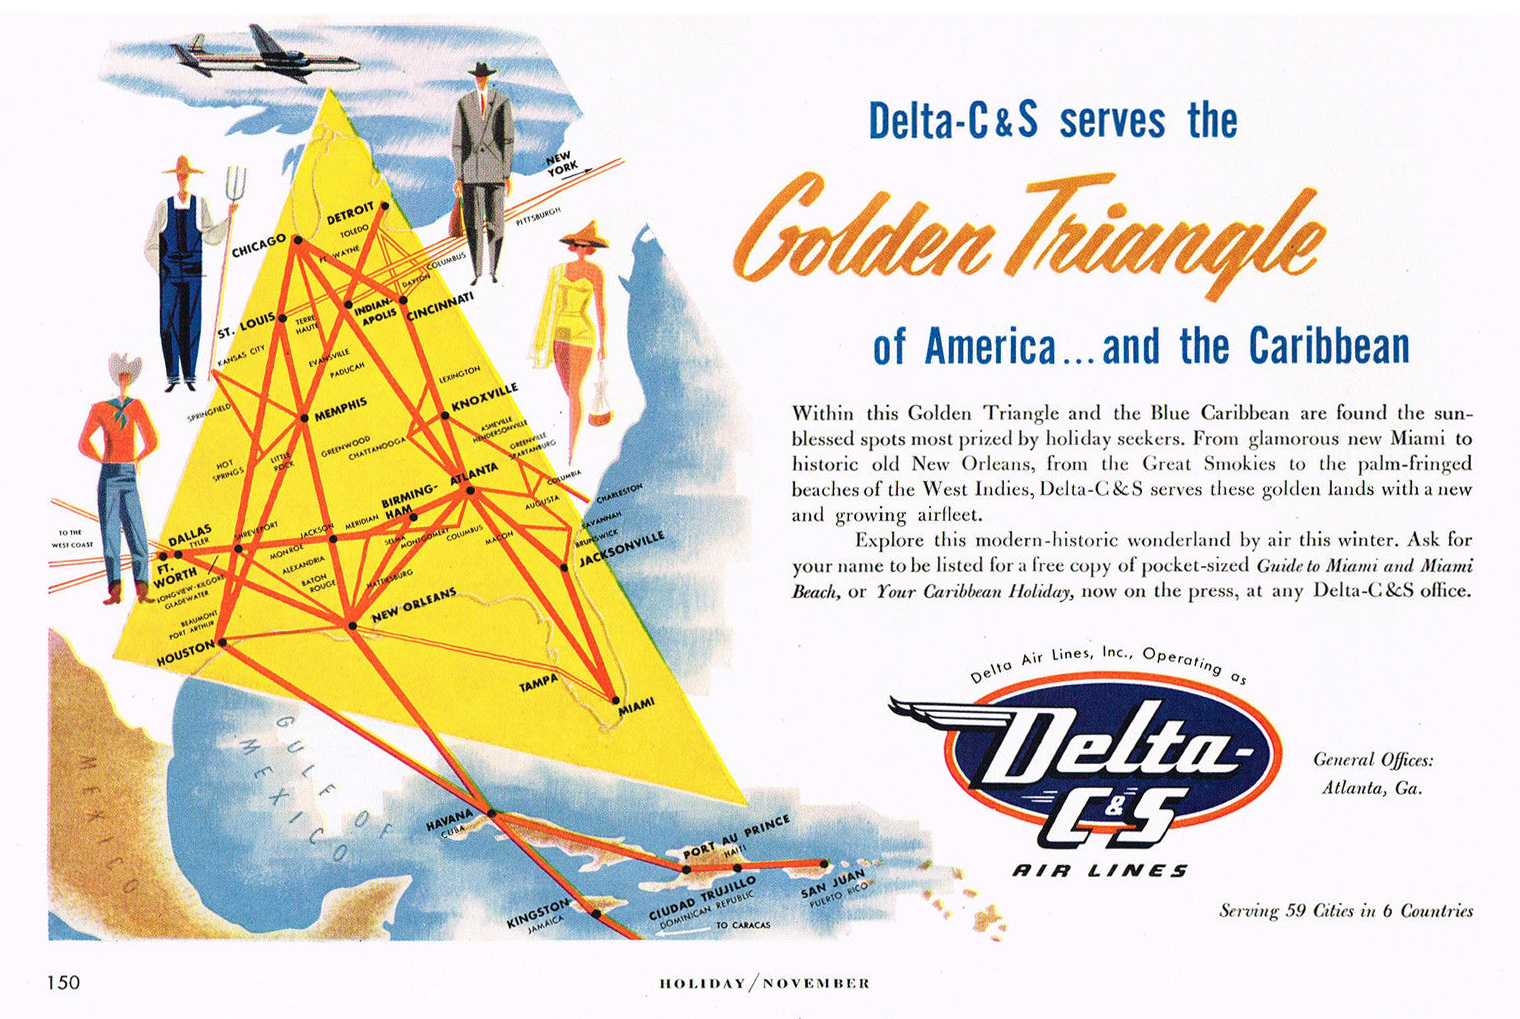 Major Airline Carrier Red Triangle Logo 1953 delta c&s airlines